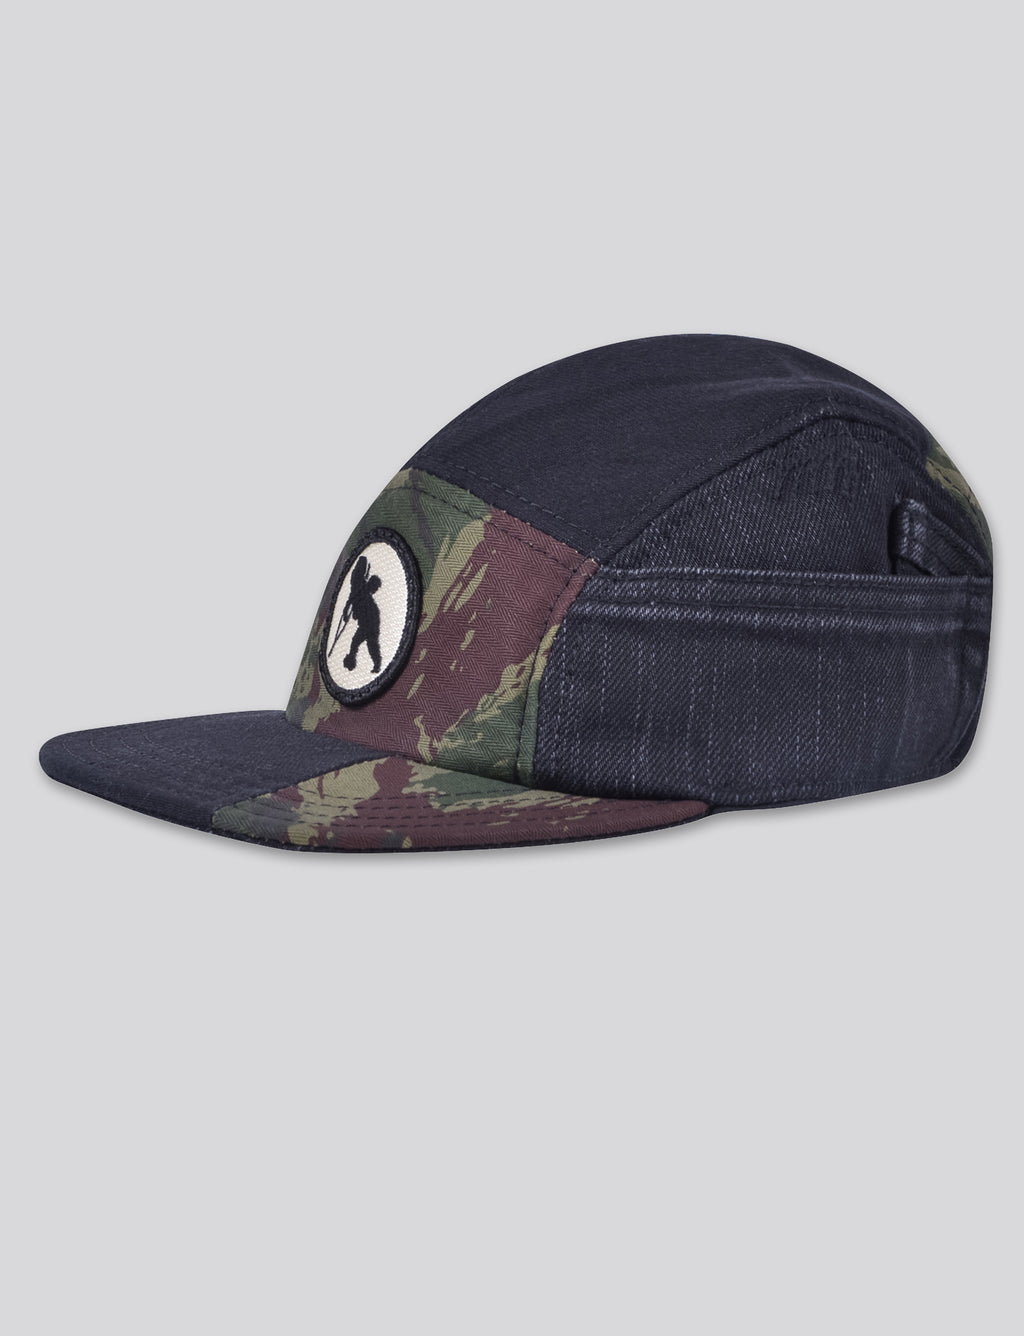 Prps - #2 Black Denim/Camo 5 Panel Hat - Hat - Prps